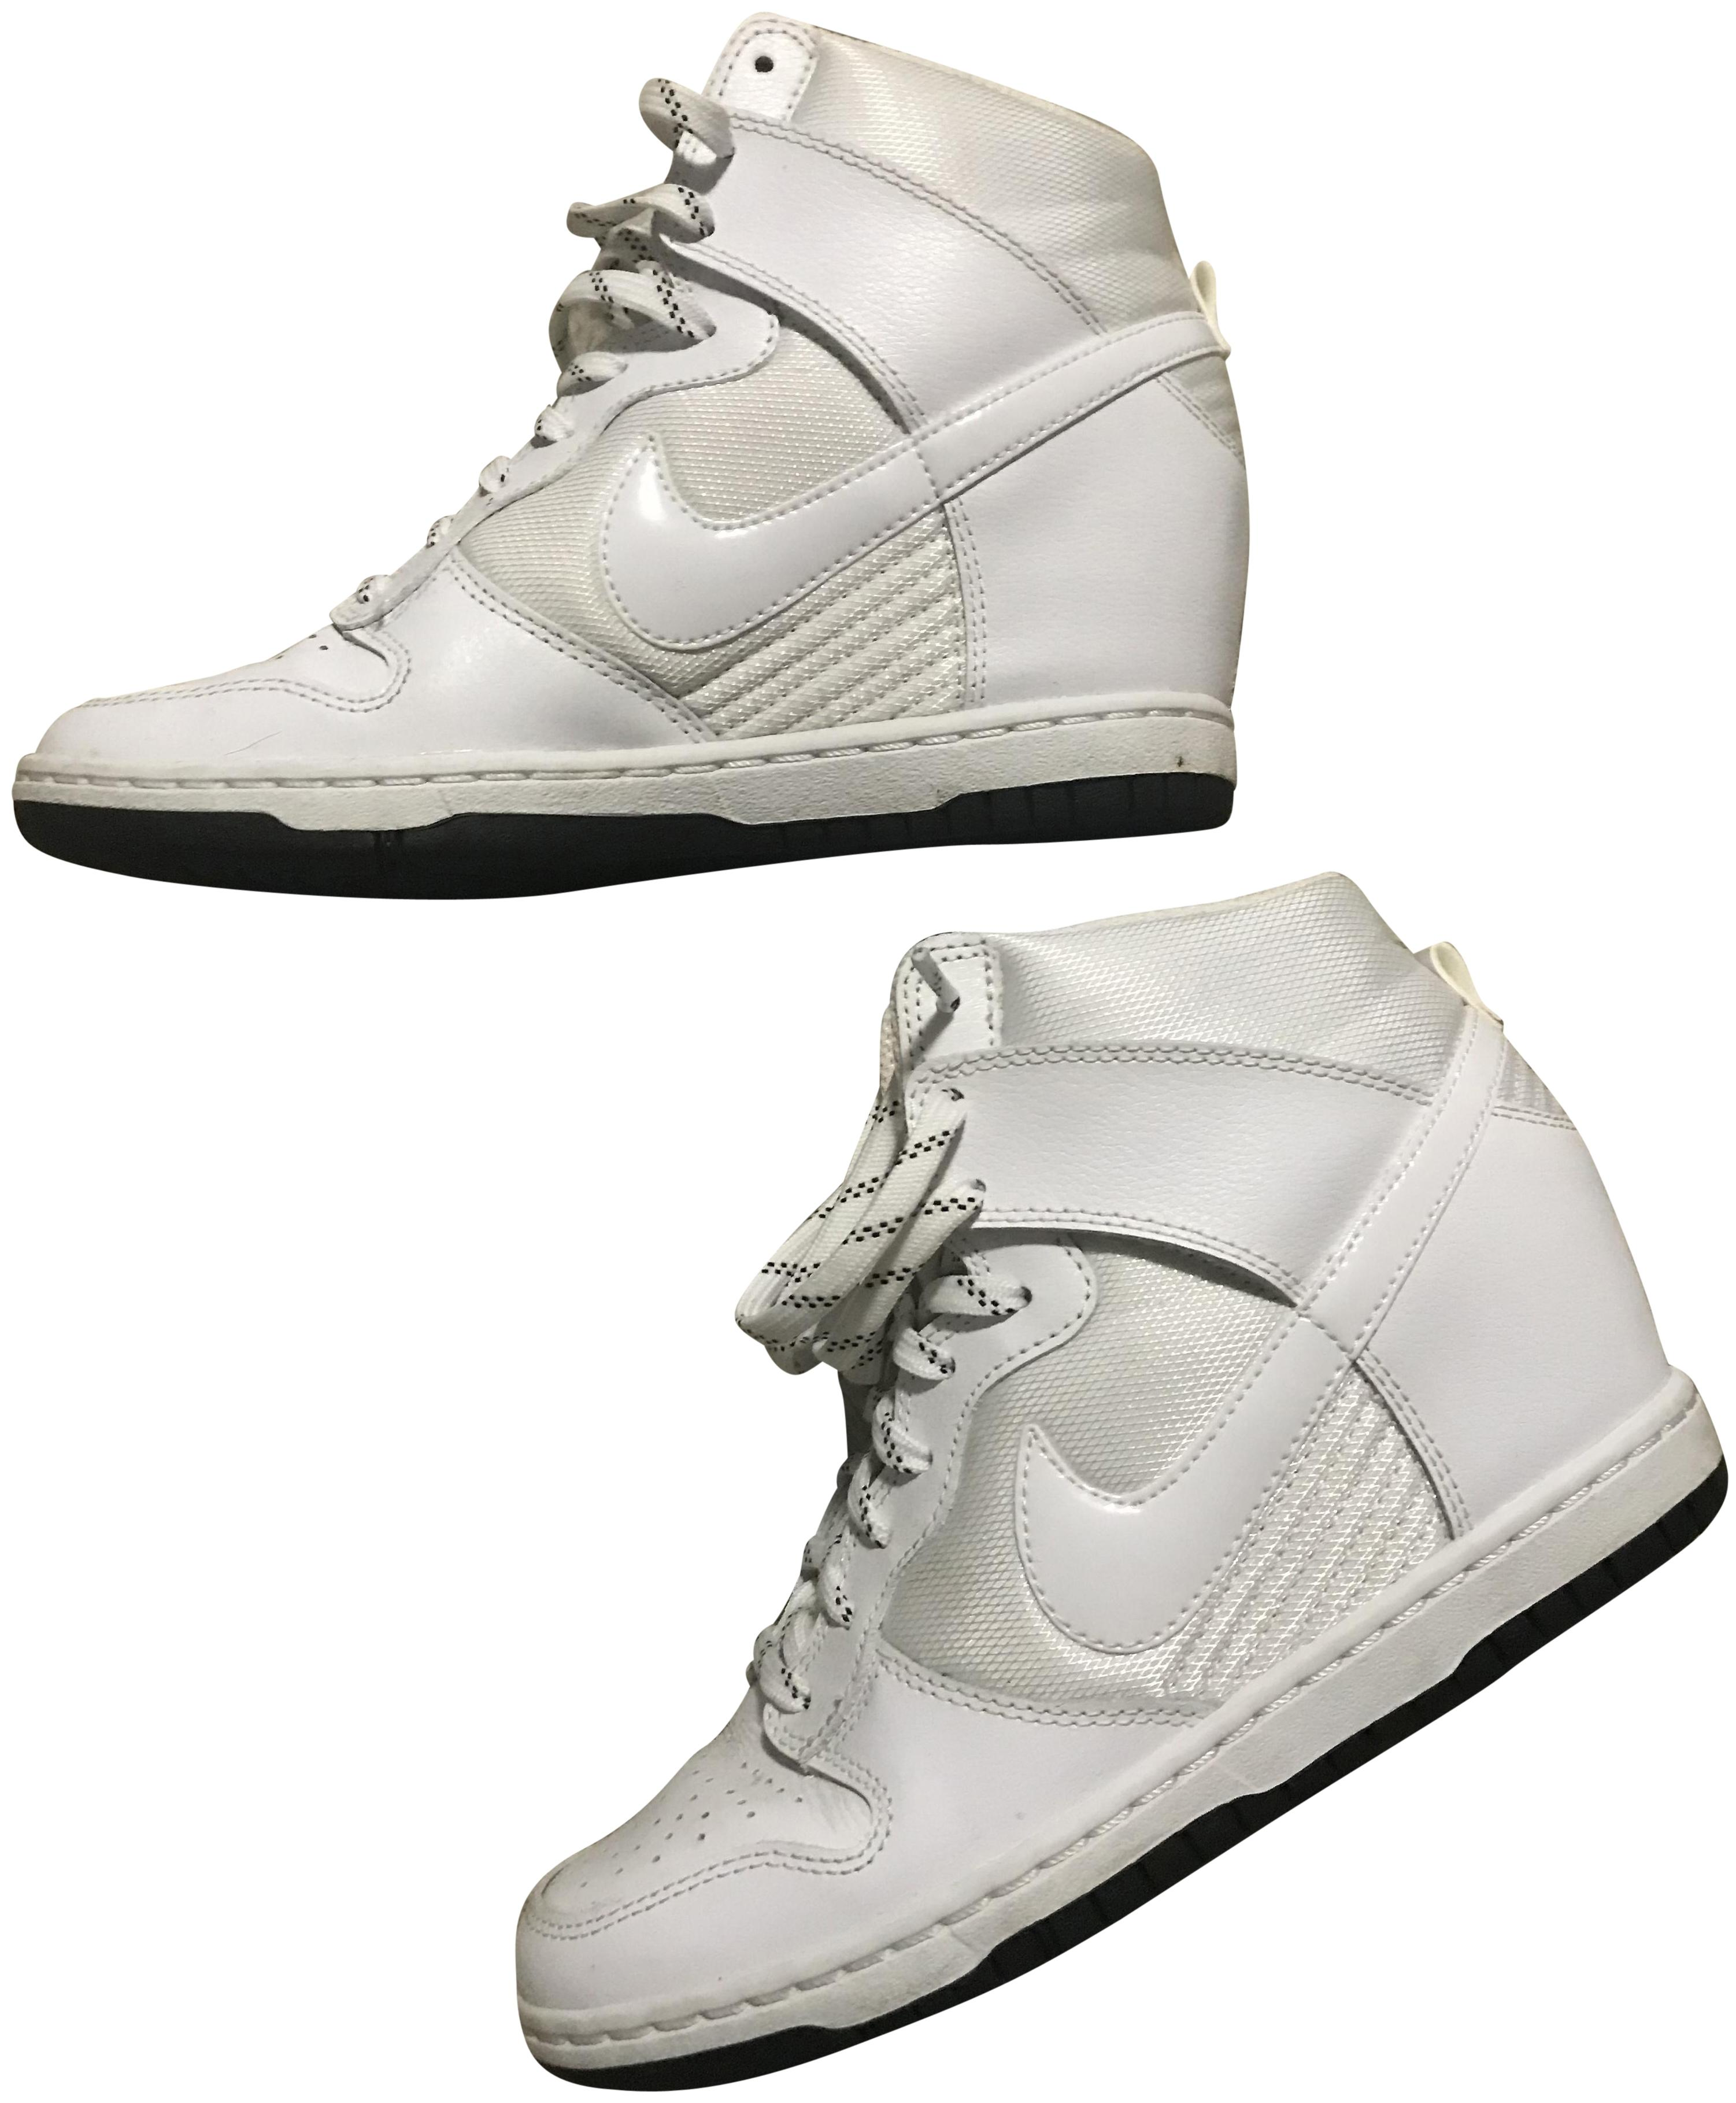 7b1214179e ... dunk sky hi womens sneaker wedge black sail suede 528899 002 size 8 us  canada nike white with black soles wedges f6e15 c1afe ...